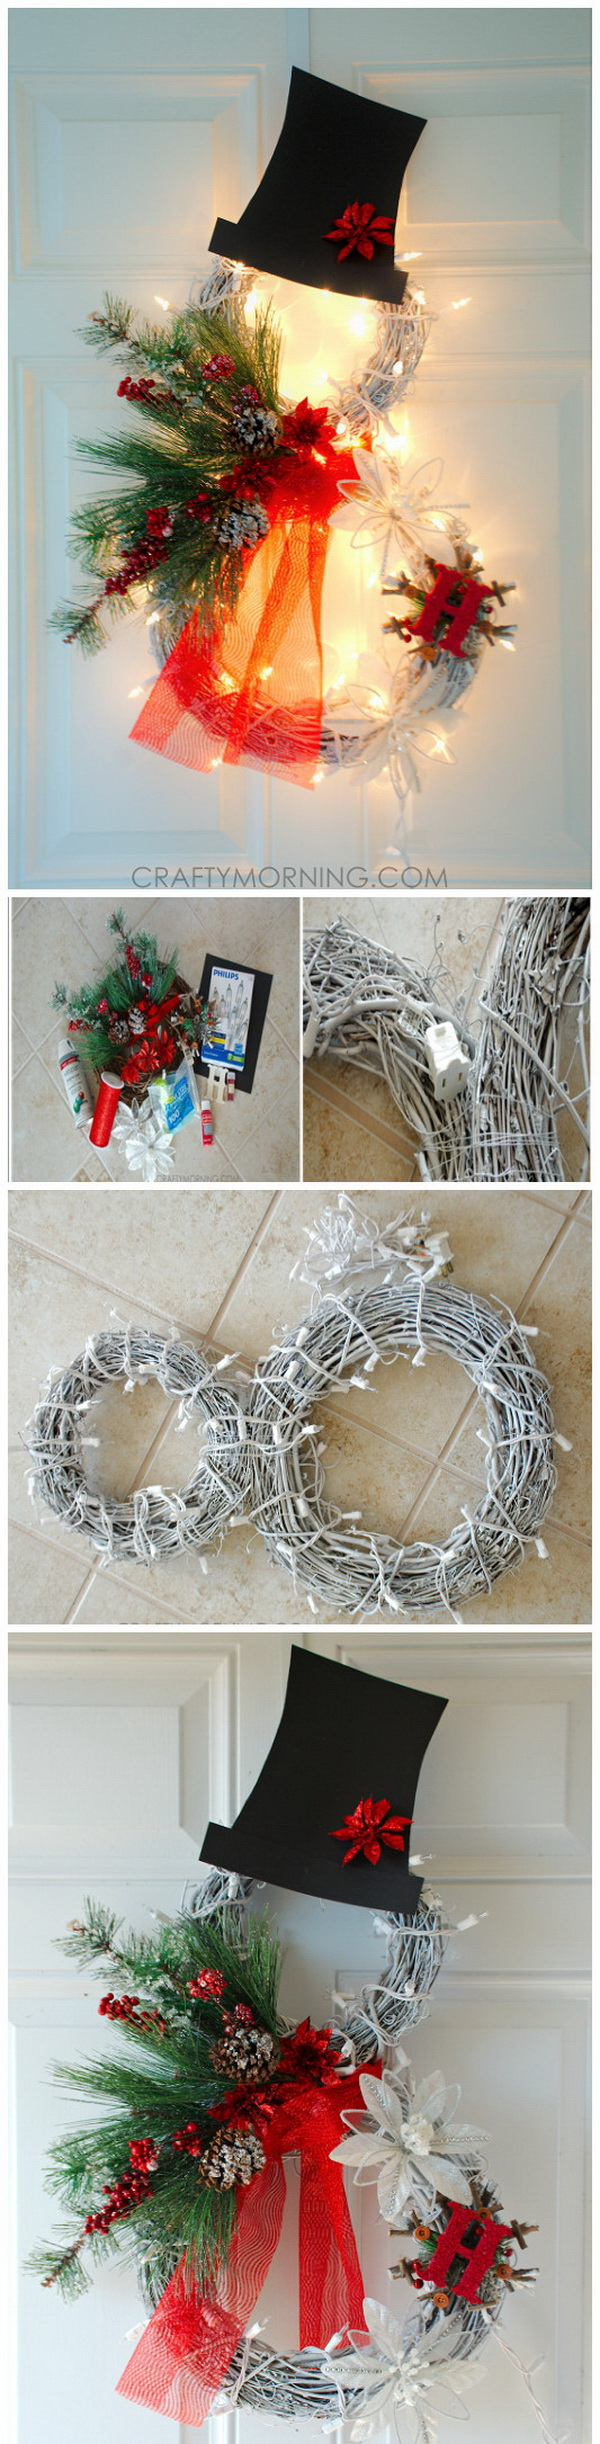 Lighted Grapevine Snowman Wreath. Beautiful lighted grapevine snowman wreath to make for a Christmas door decoration and add a feminine touch to the decoration. You can personalize it with an initial, making it a lovely gift.